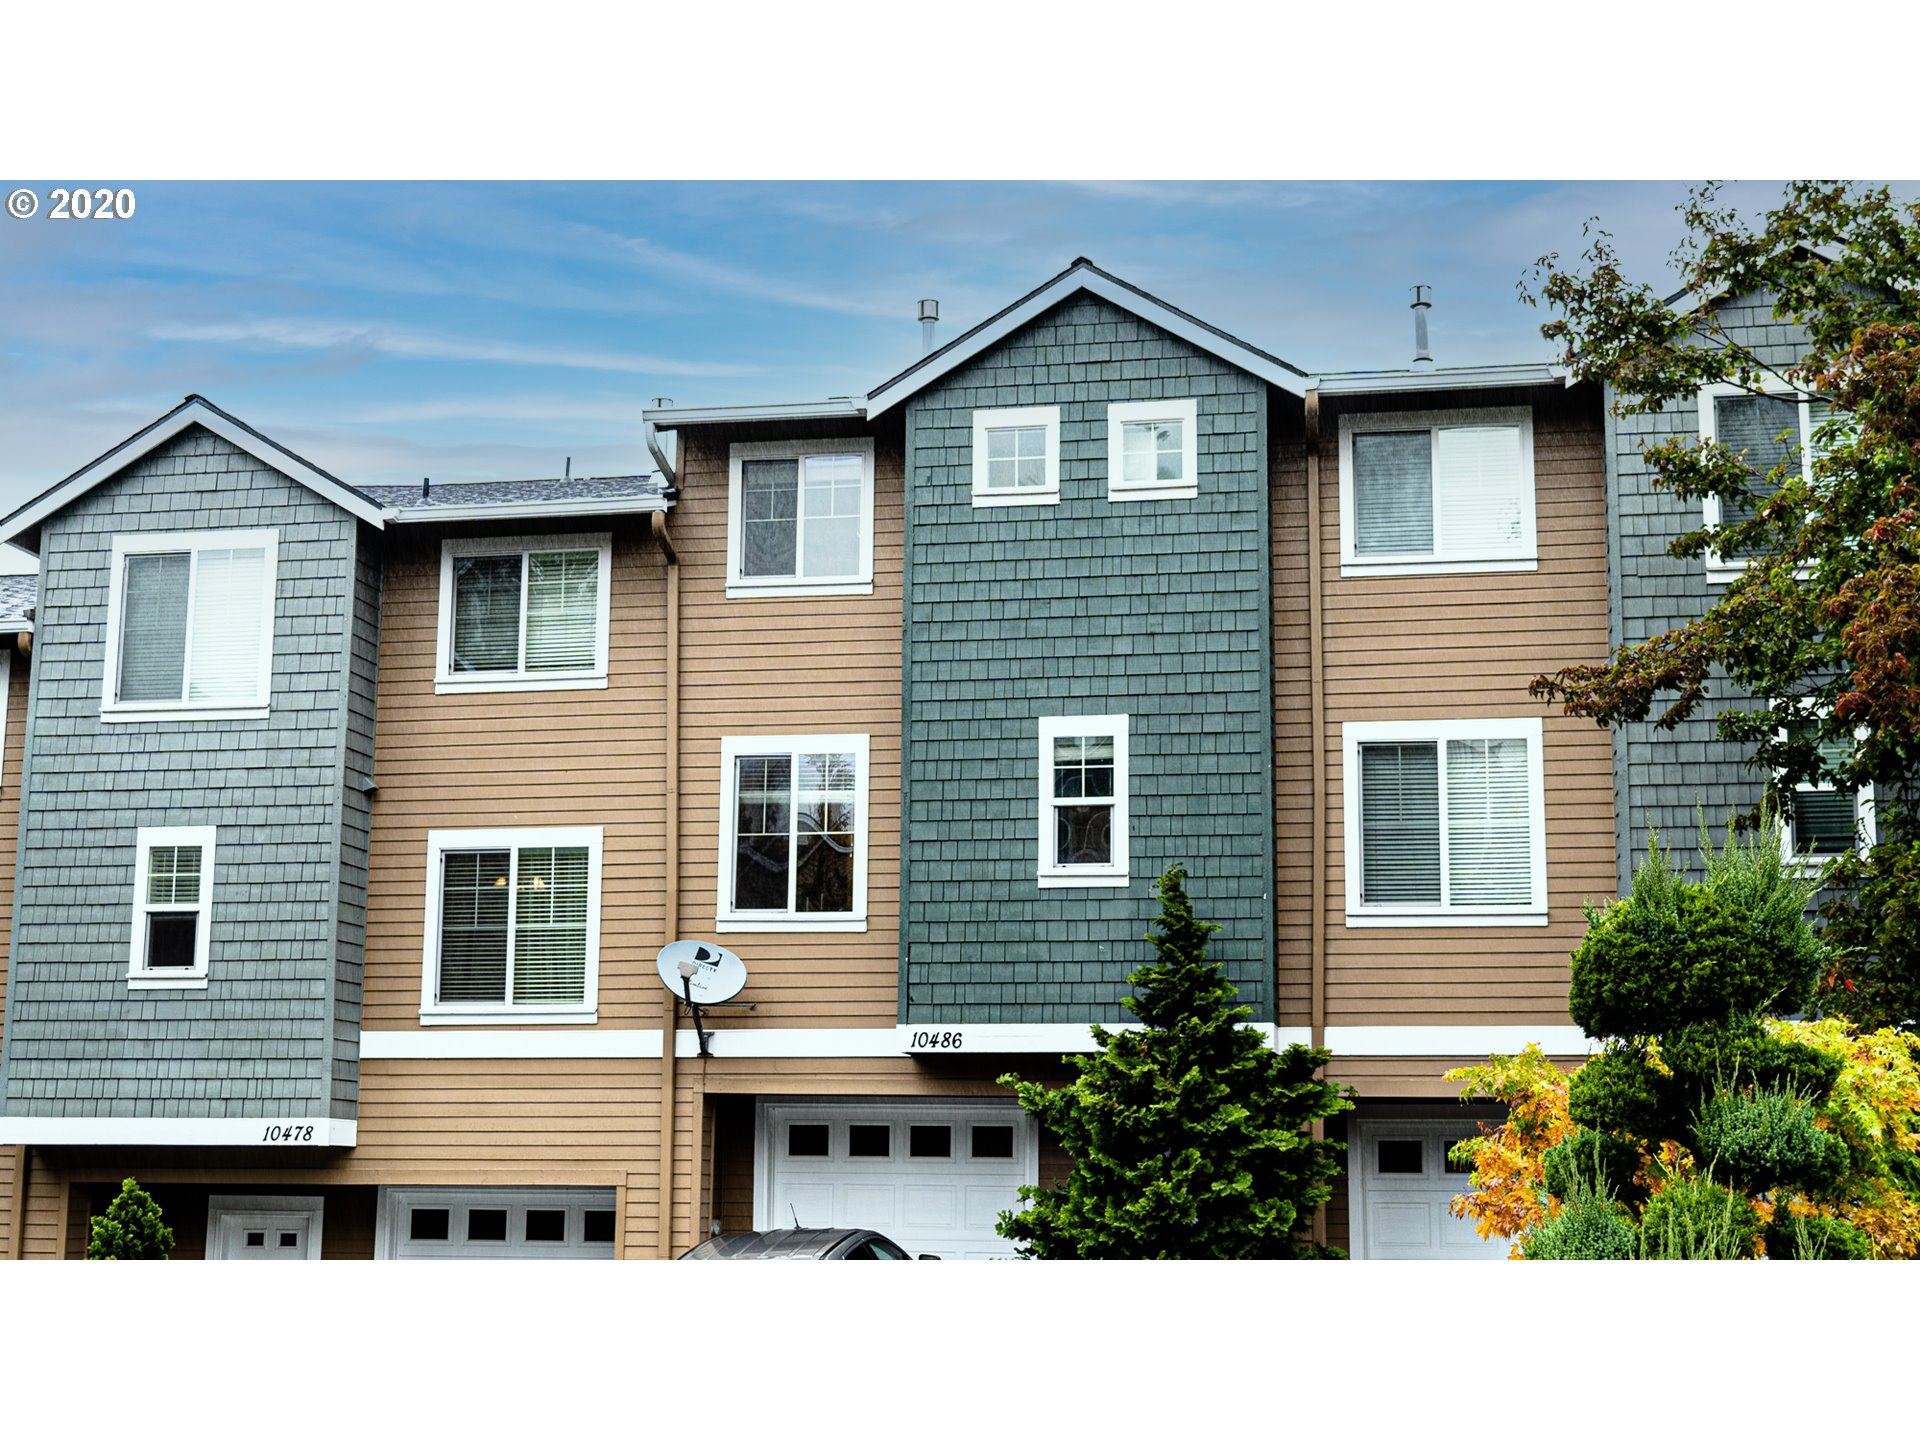 10486 NW FORESTVIEW WAY, Portland, OR 97229 - MLS#: 20273553